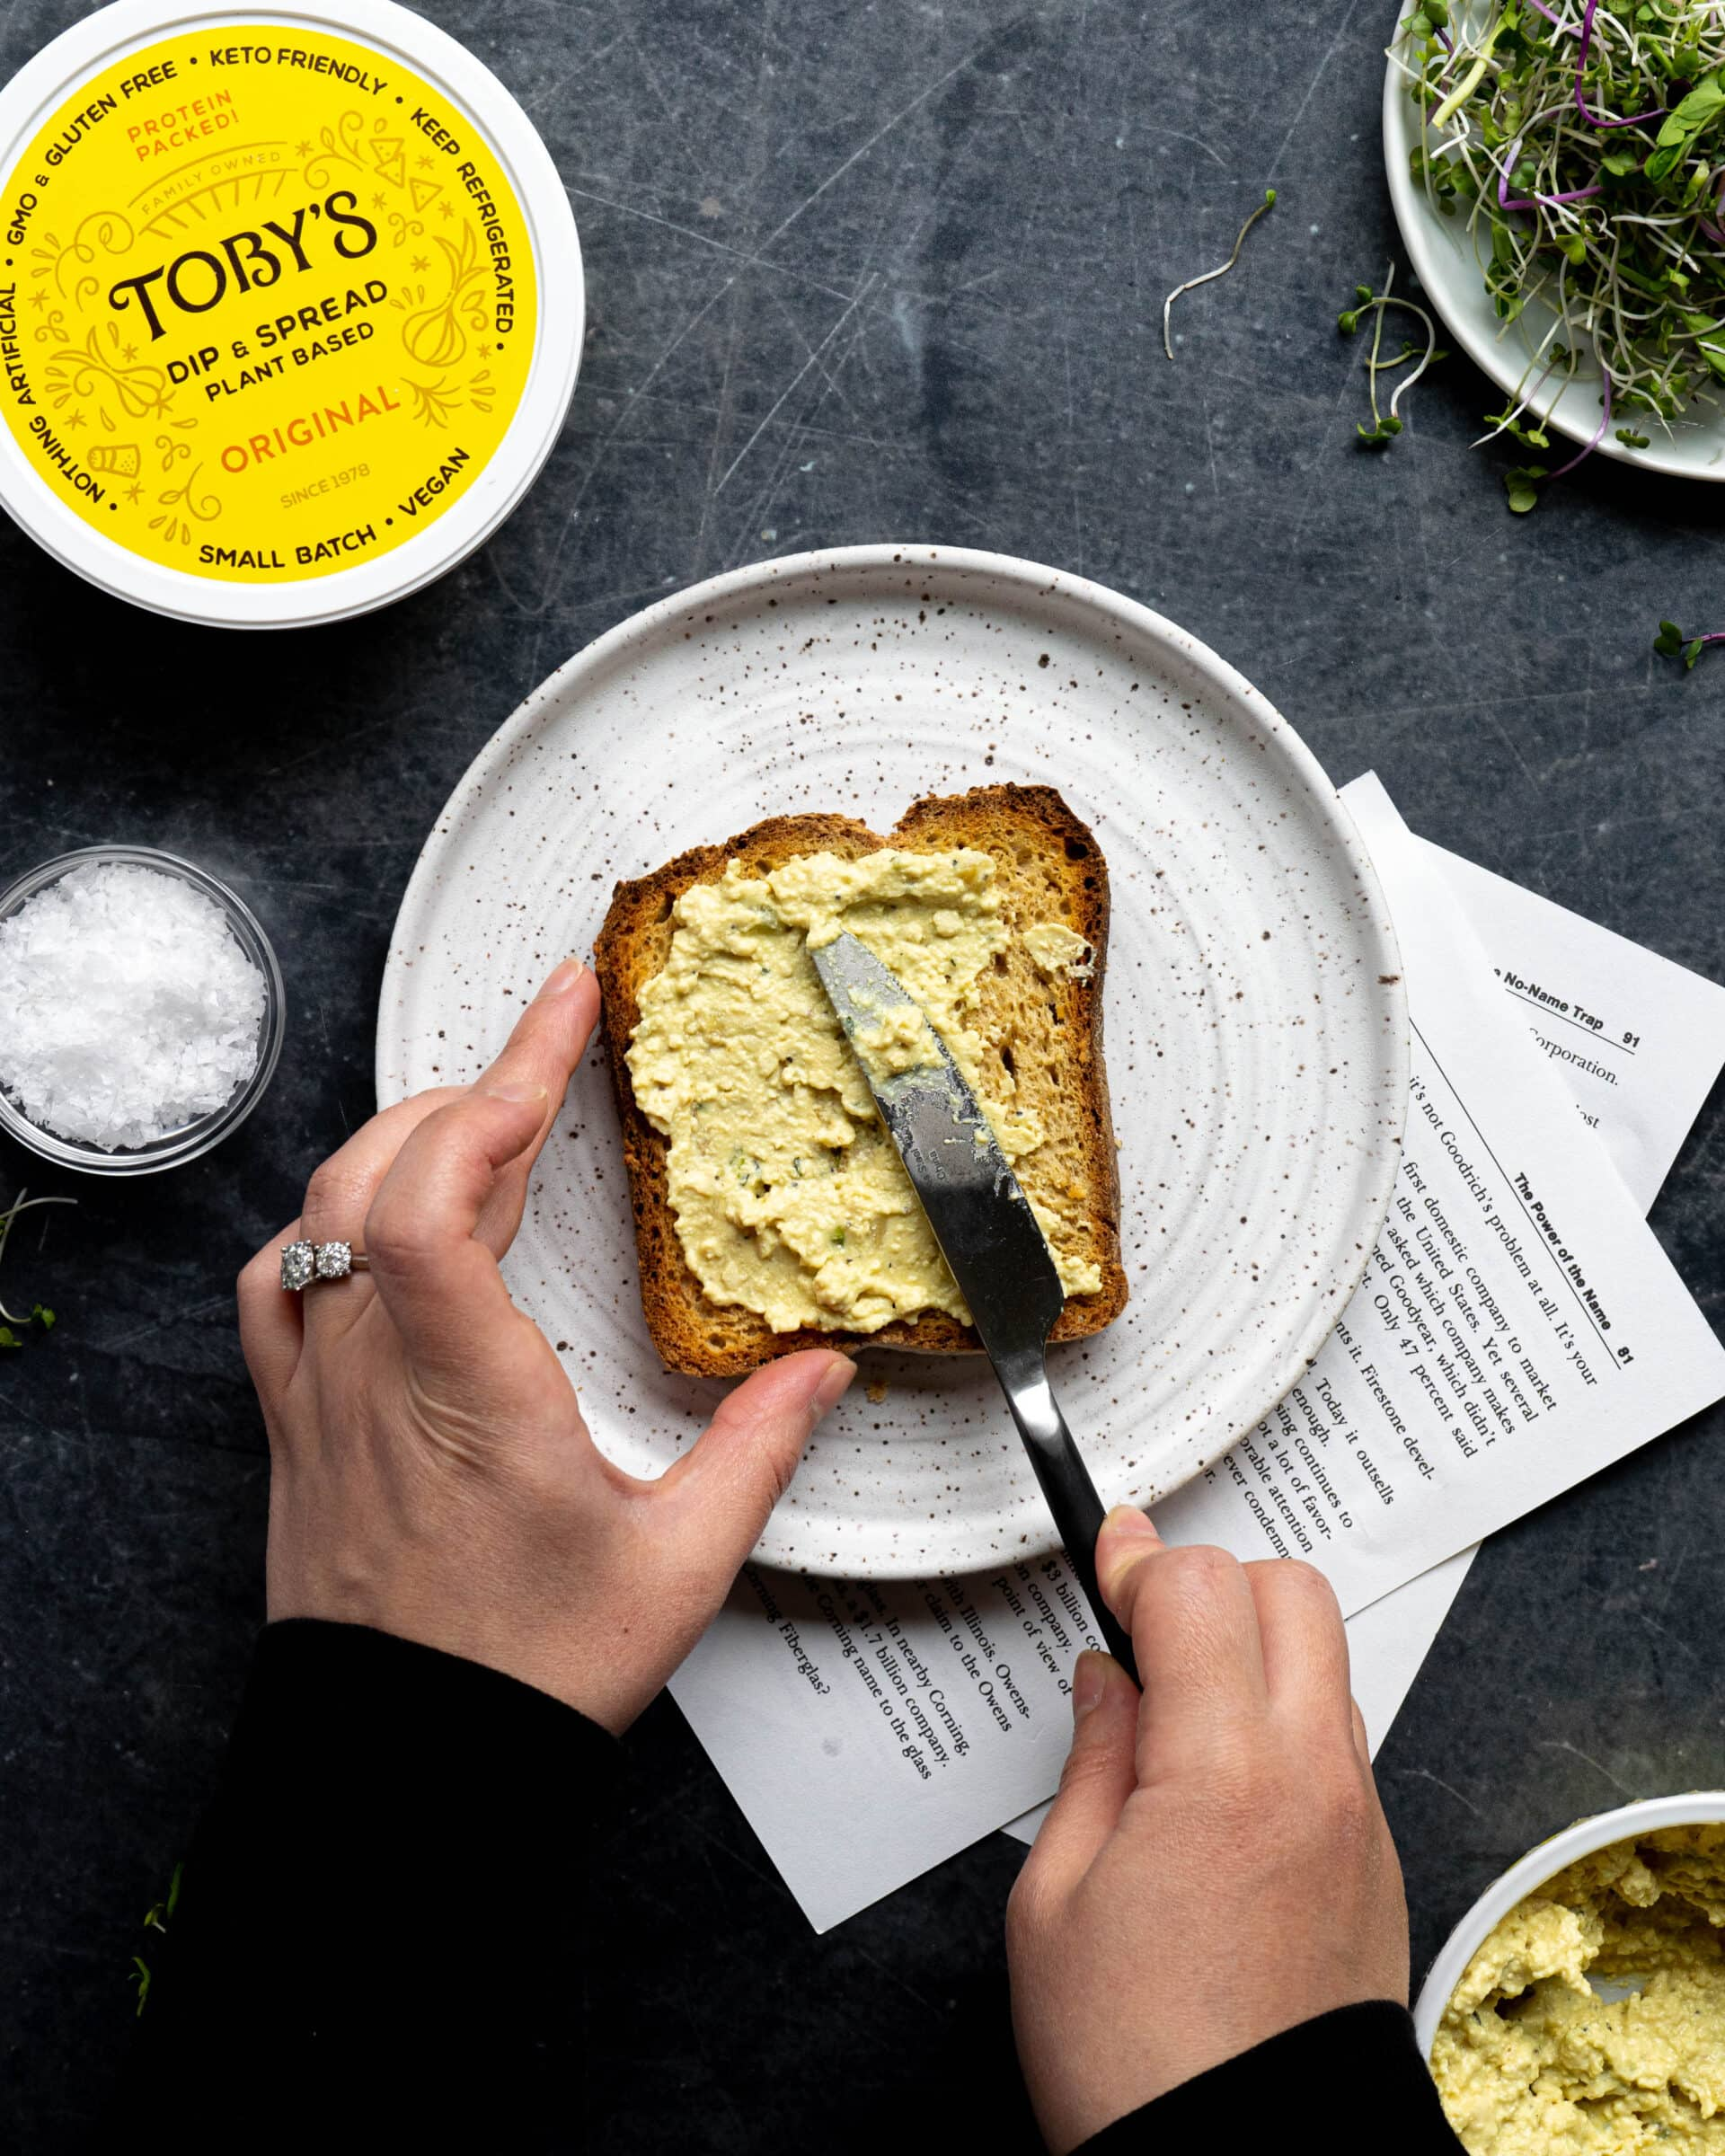 Two hands spreading spread onto toast